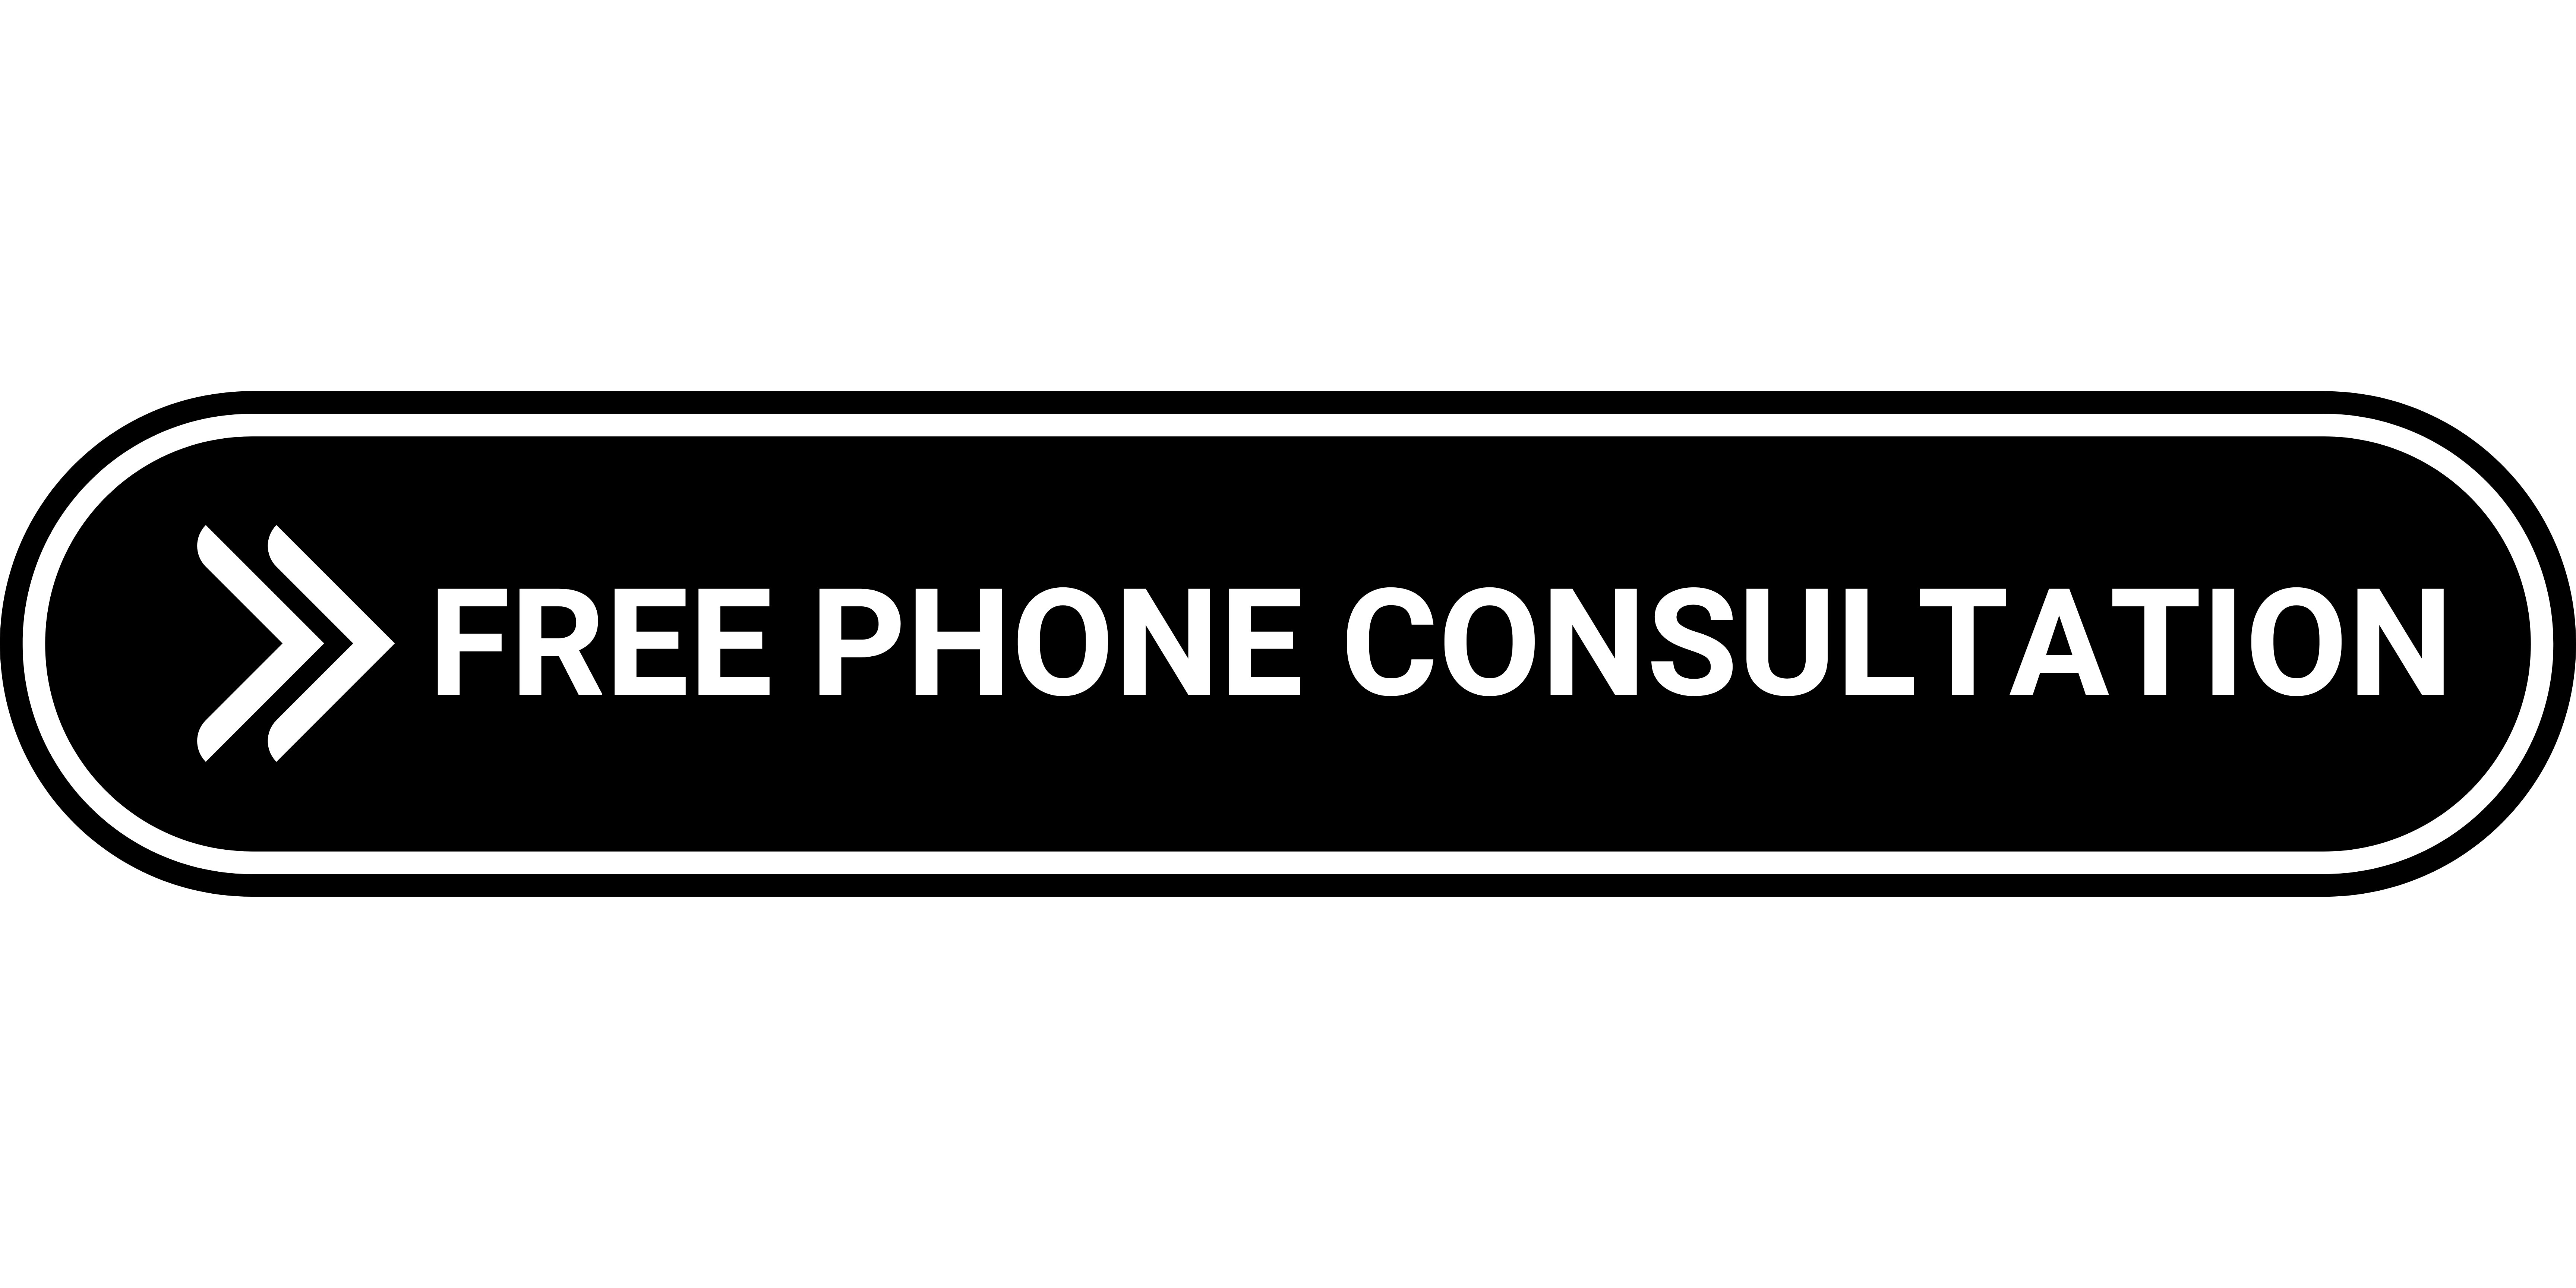 Free Phone Consultation button that links to schedule an appointment.